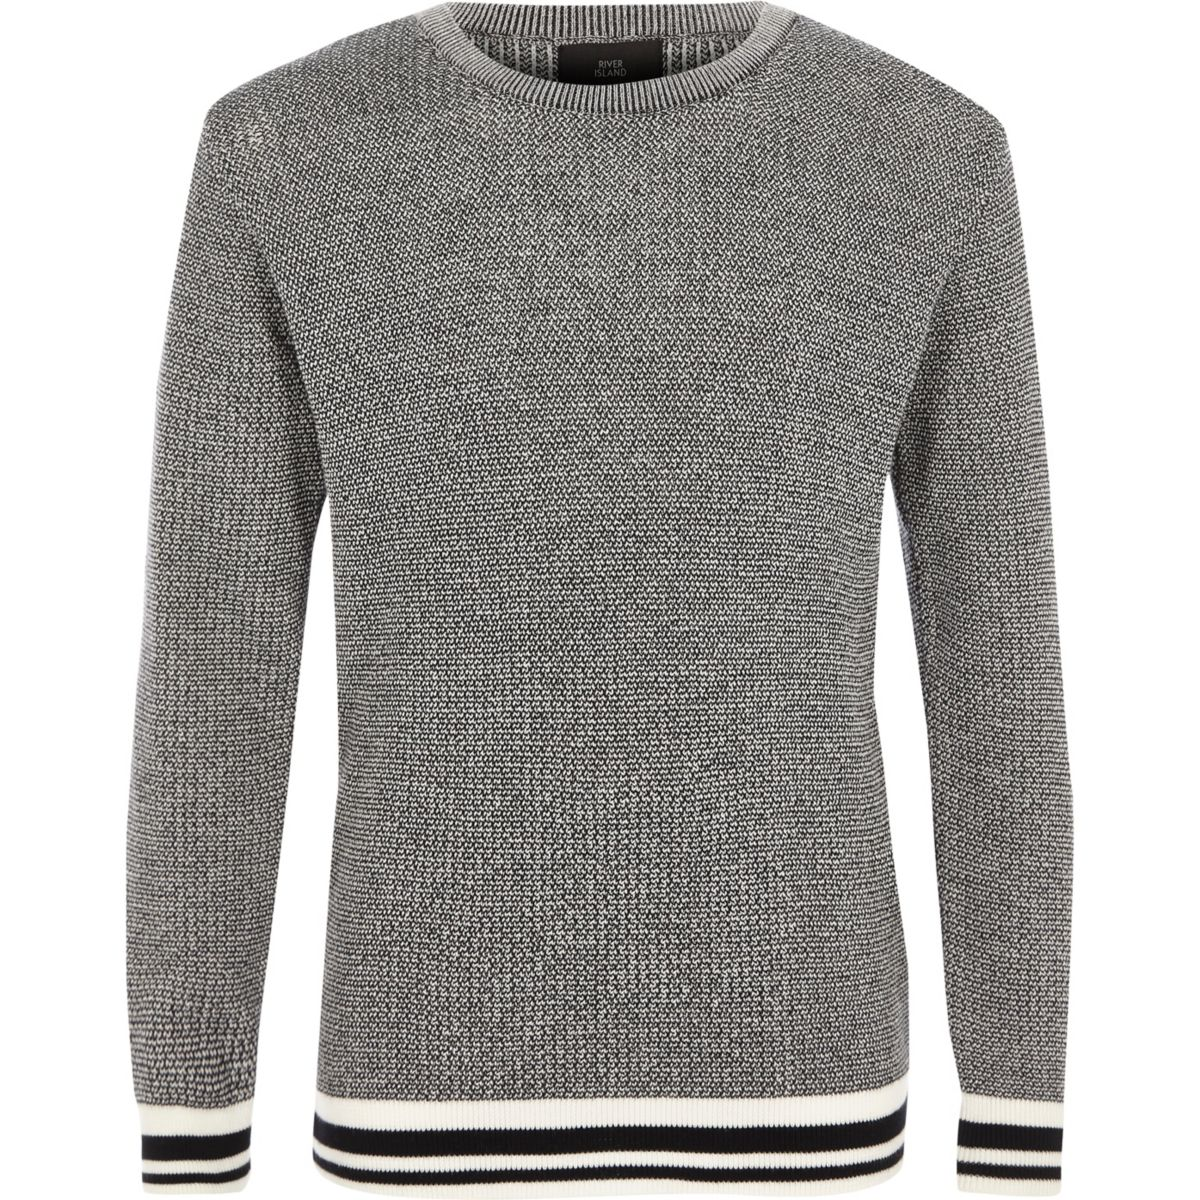 Boys black tipped sweater